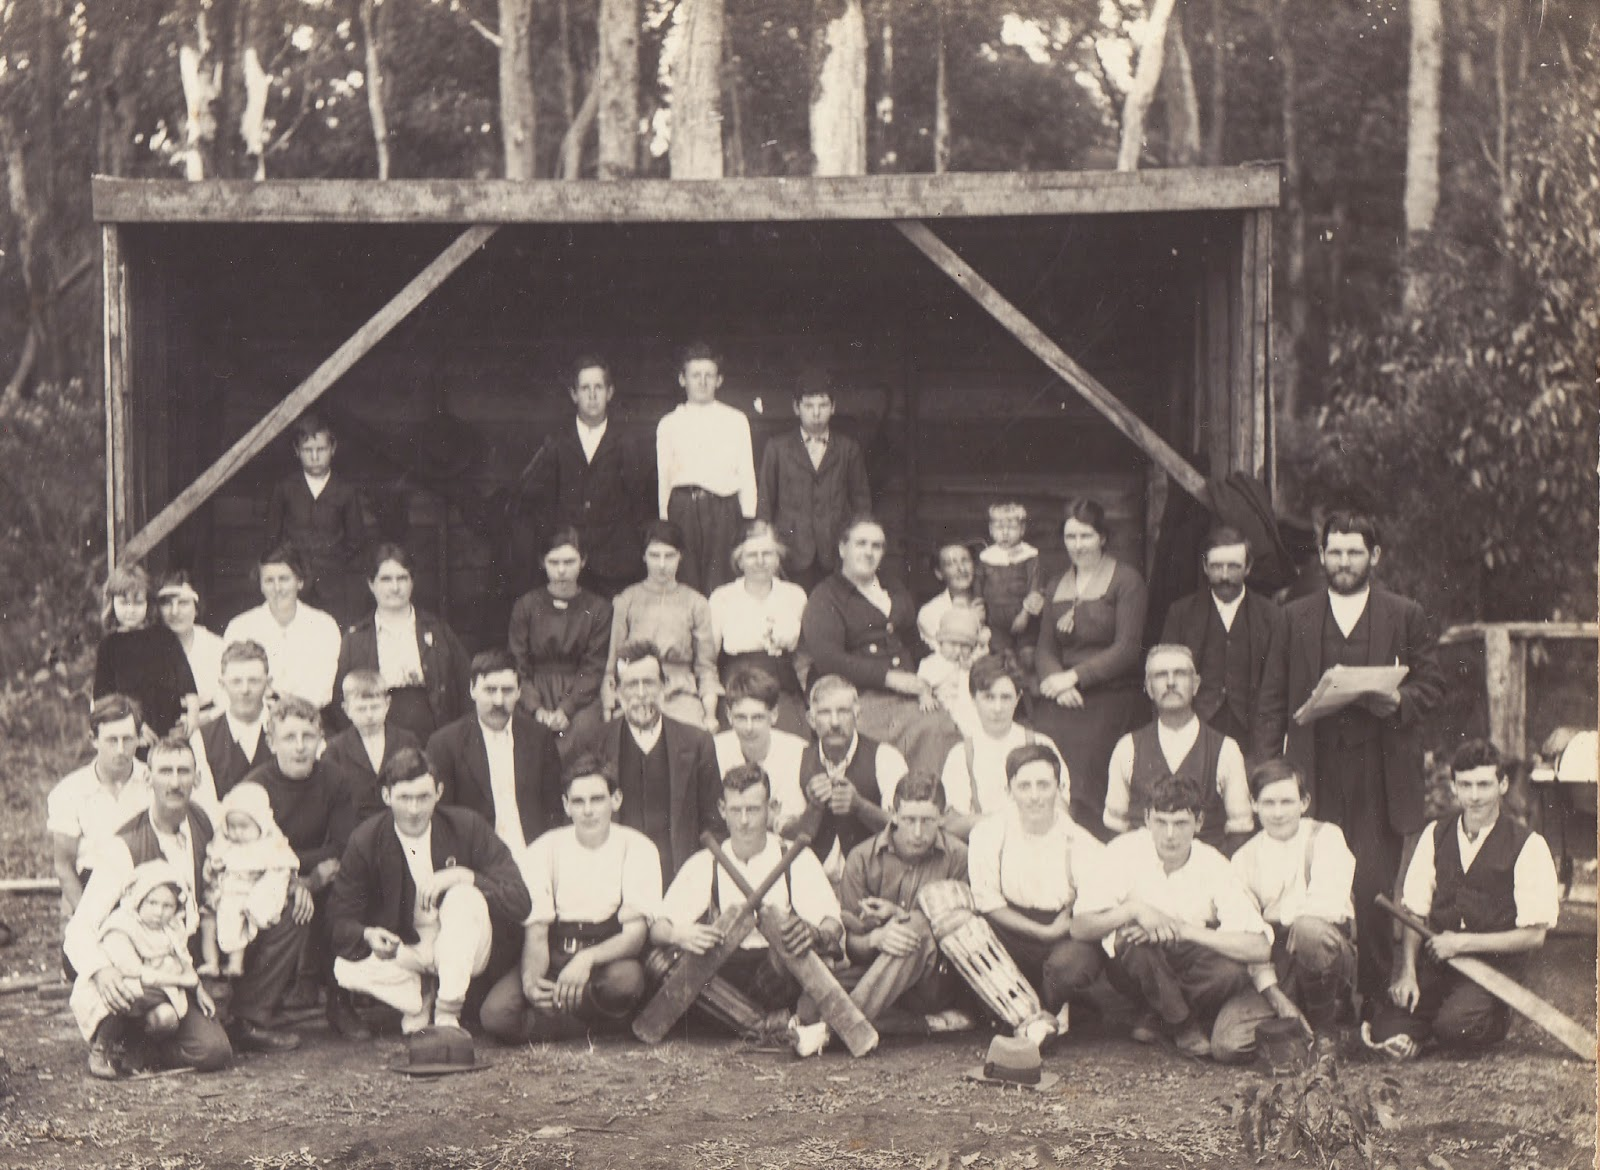 The Wandin Saga Pioneers Of Wandins Silvan White Long South Cricket Team Supporters C1918 At Upper Fernydale Oval Now In Reservoir Reserve Opposite Yarra Pipeline Enrty